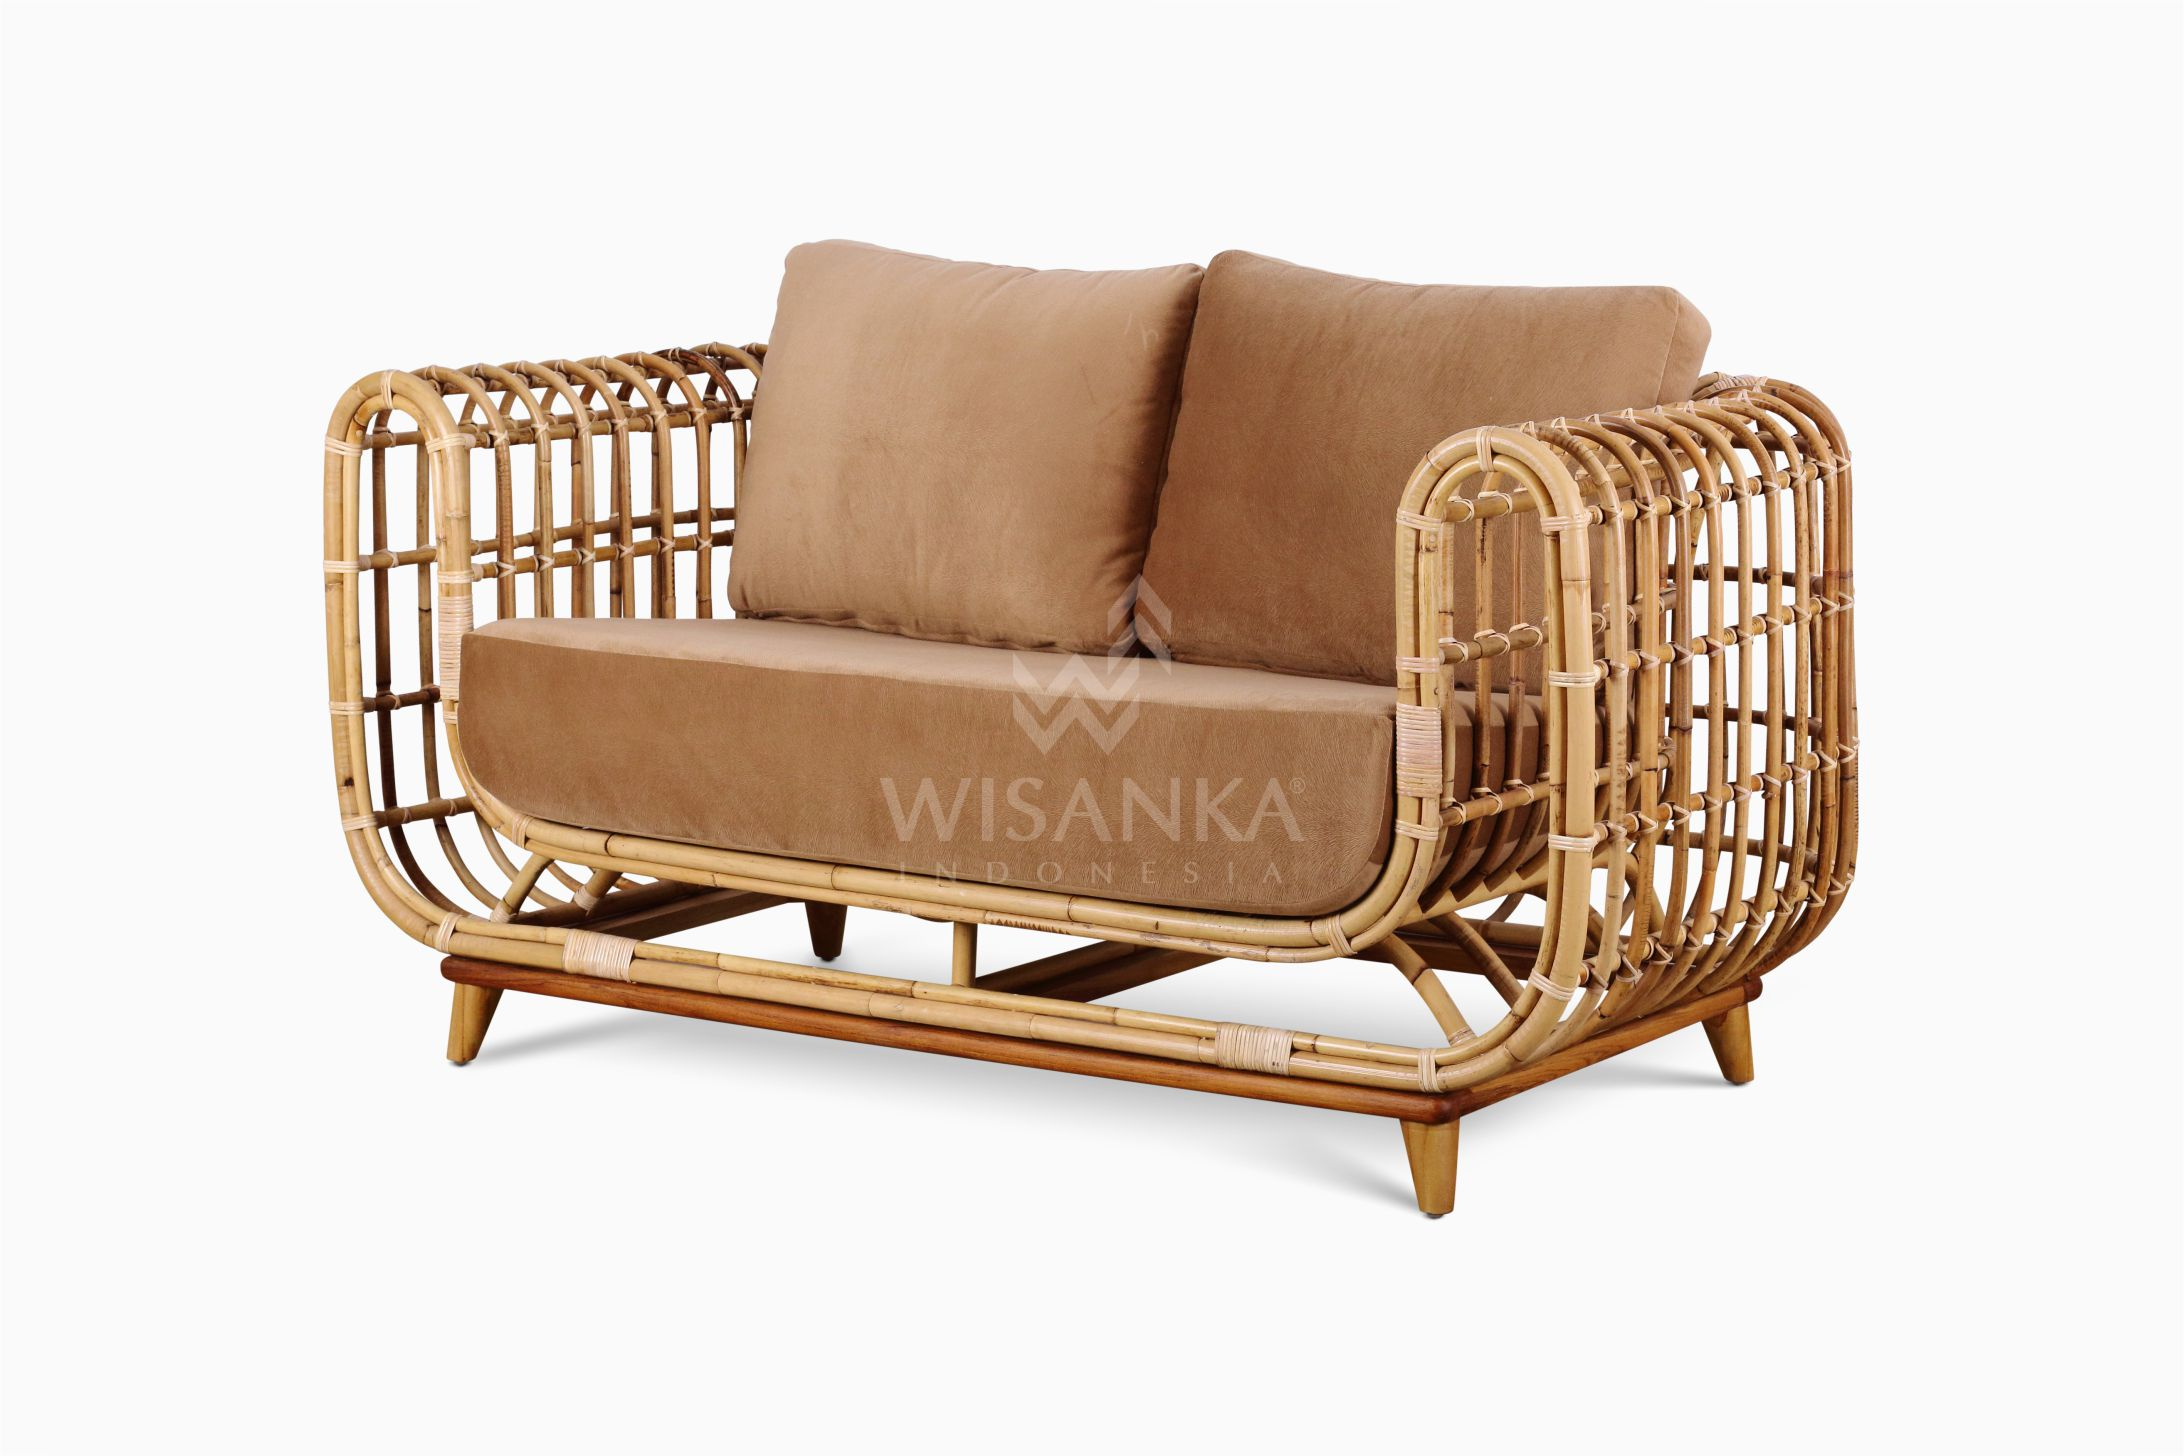 Full Size of Rattan Furniture Singapore Sale Sofa Table With Storage Outdoor Cover Bed Cushion Indoor Vintage For Bedford Corner Black And Chairs Siena Natural Supplier Kids Sofa Rattan Sofa